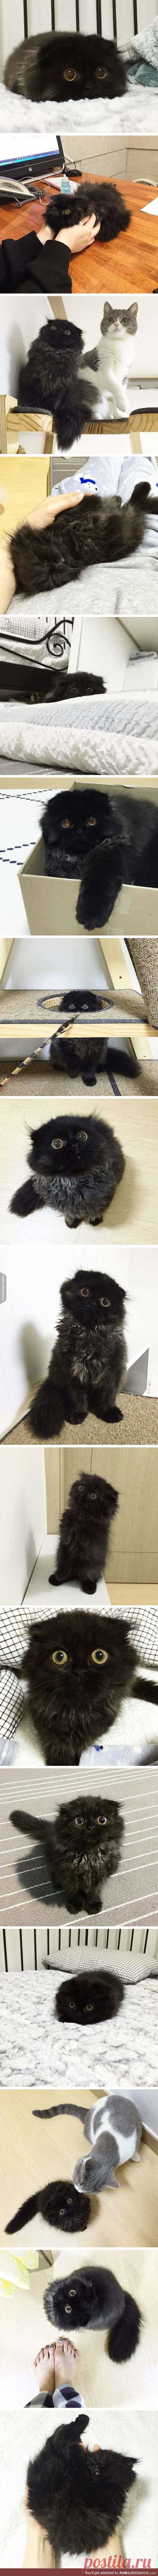 This cat have special eyes! - FunSubstance Click to see the full post now